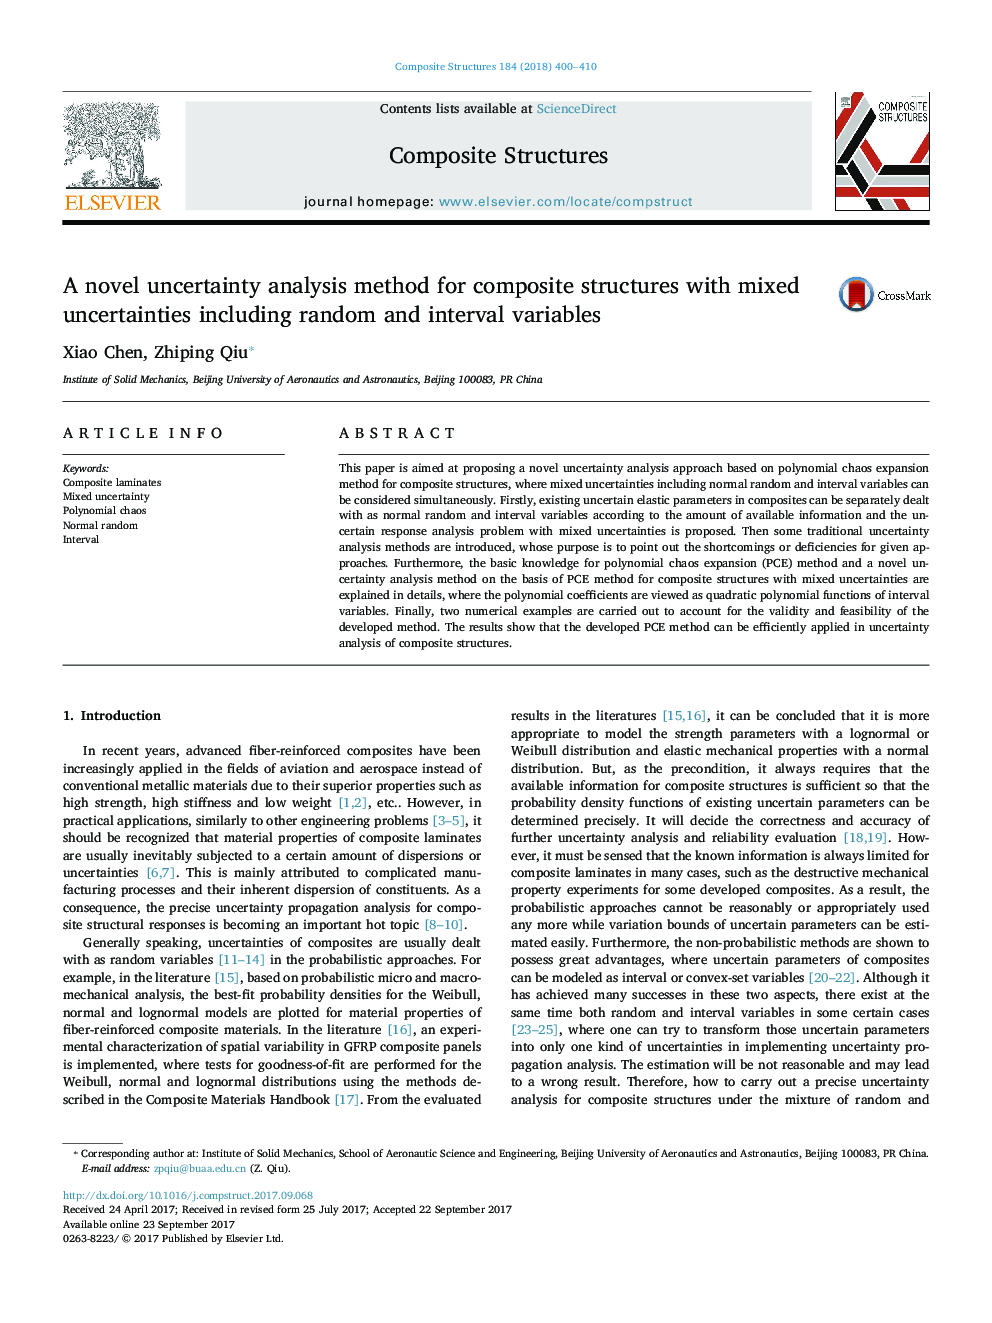 A novel uncertainty analysis method for composite structures with mixed uncertainties including random and interval variables